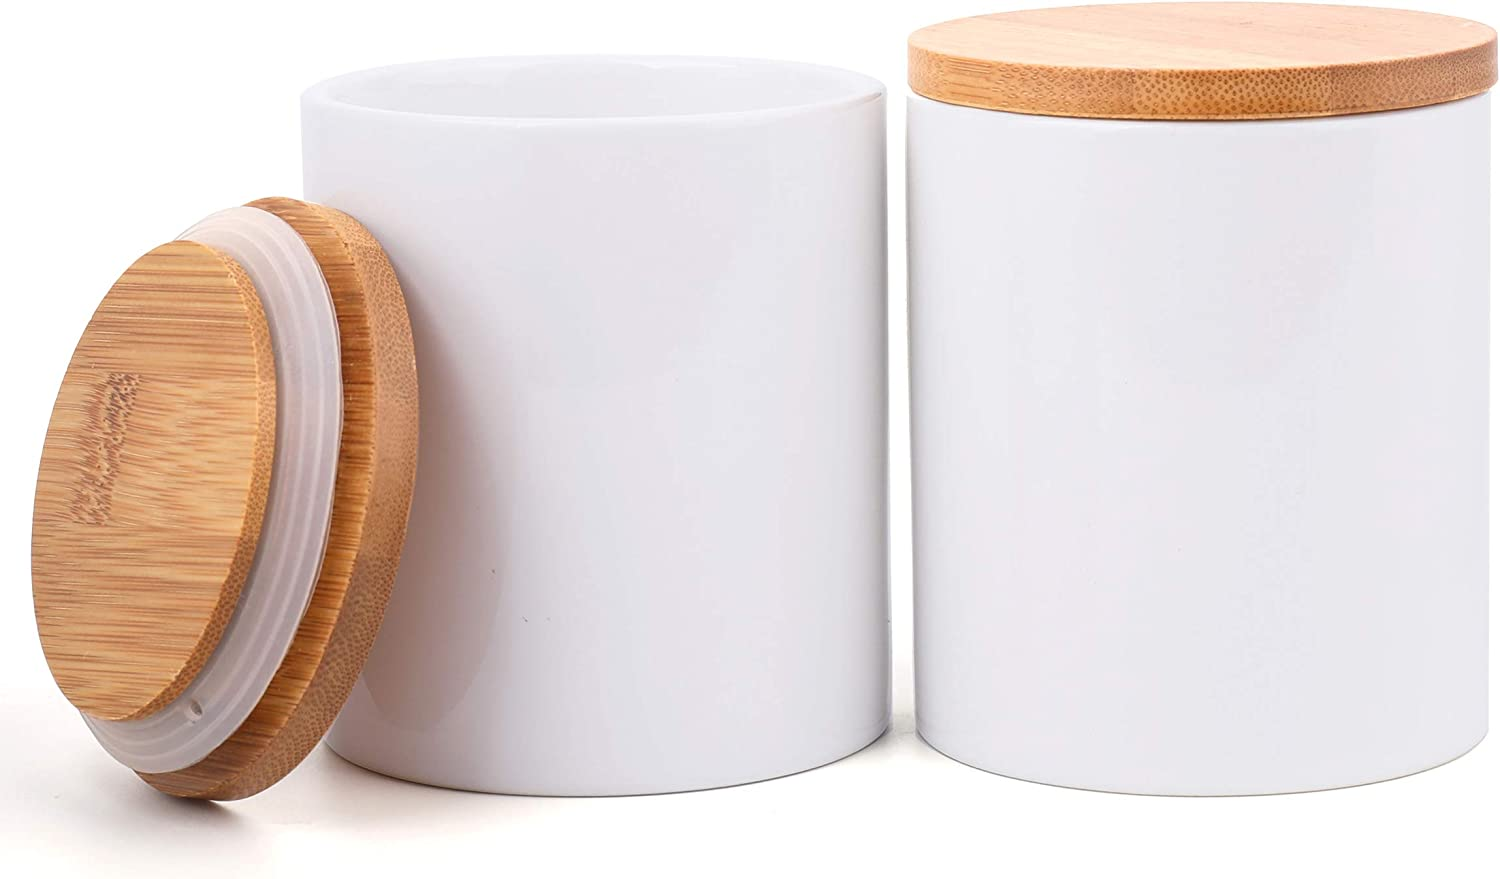 Lawei 2 Pack Ceramic Food Storage Jar with Airtight Seal Bamboo Lid - 10 oz Ceramic Canister Storage jar Sugar Bowl Salt Container Coffee Tea Jar